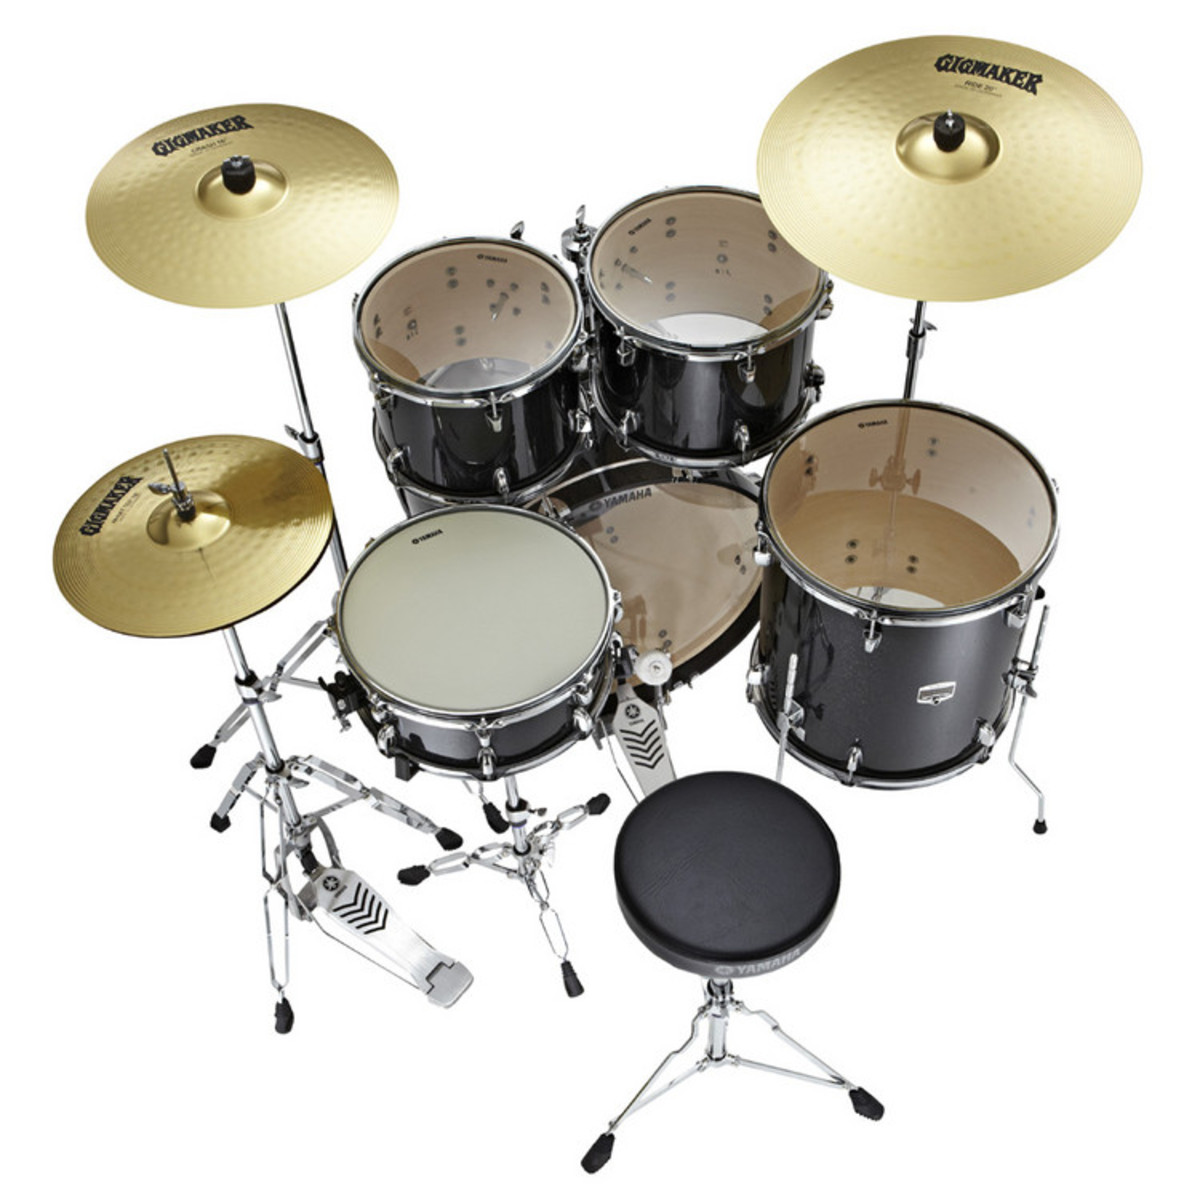 Yamaha Drum Kit : yamaha gigmaker 20 39 39 fusion drum kit black glitter at ~ Vivirlamusica.com Haus und Dekorationen